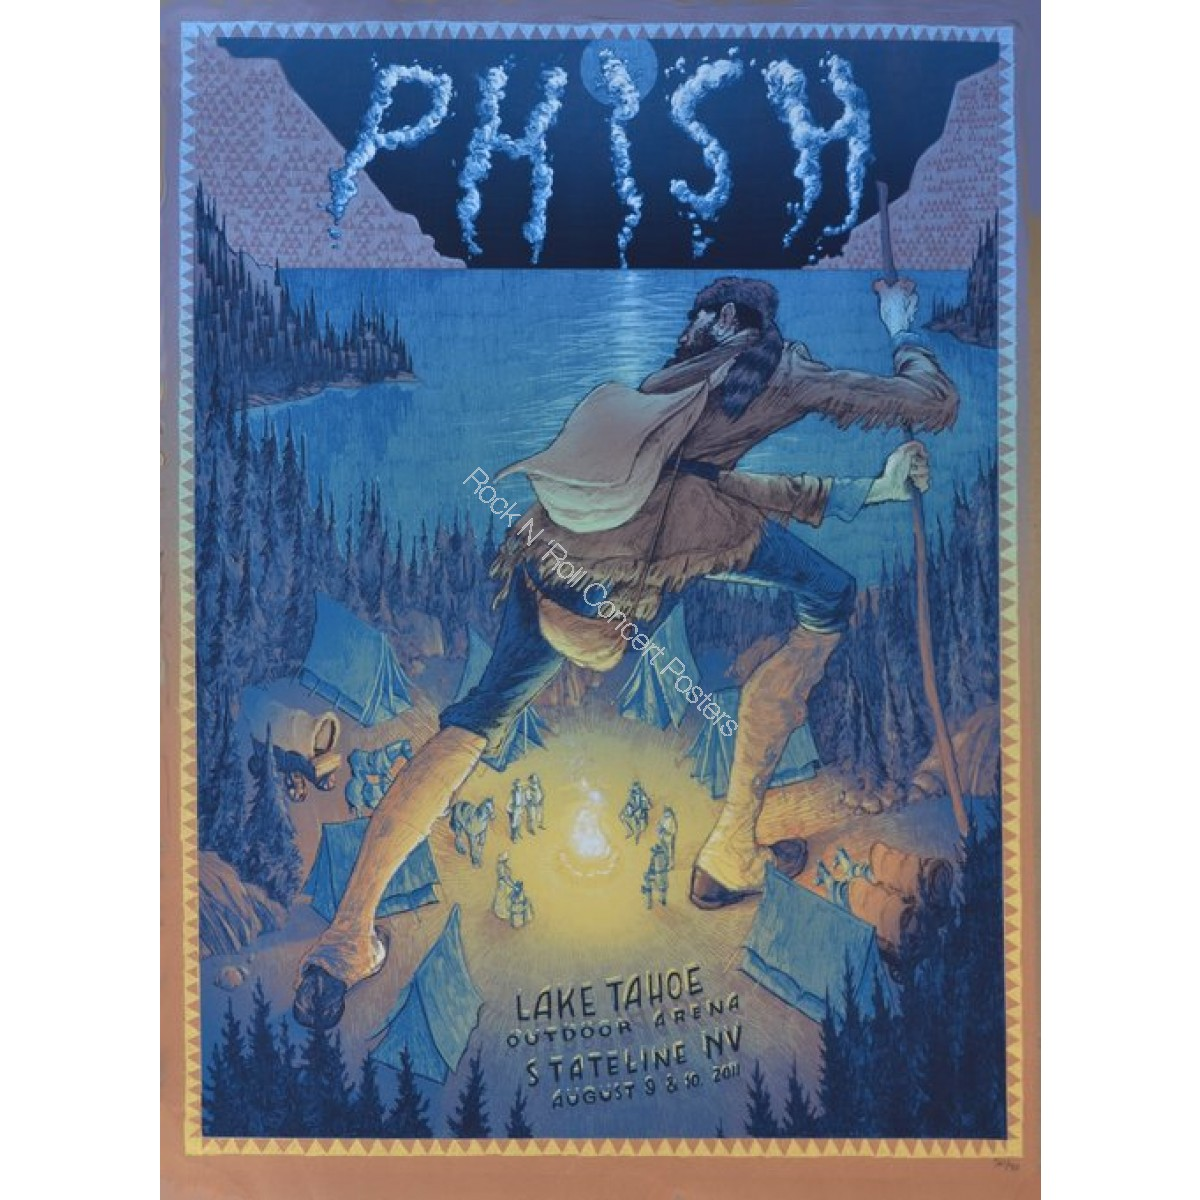 Phish @ Harvey's Casino Lake Tahoe 2011 Official Print  By Rich Kelly